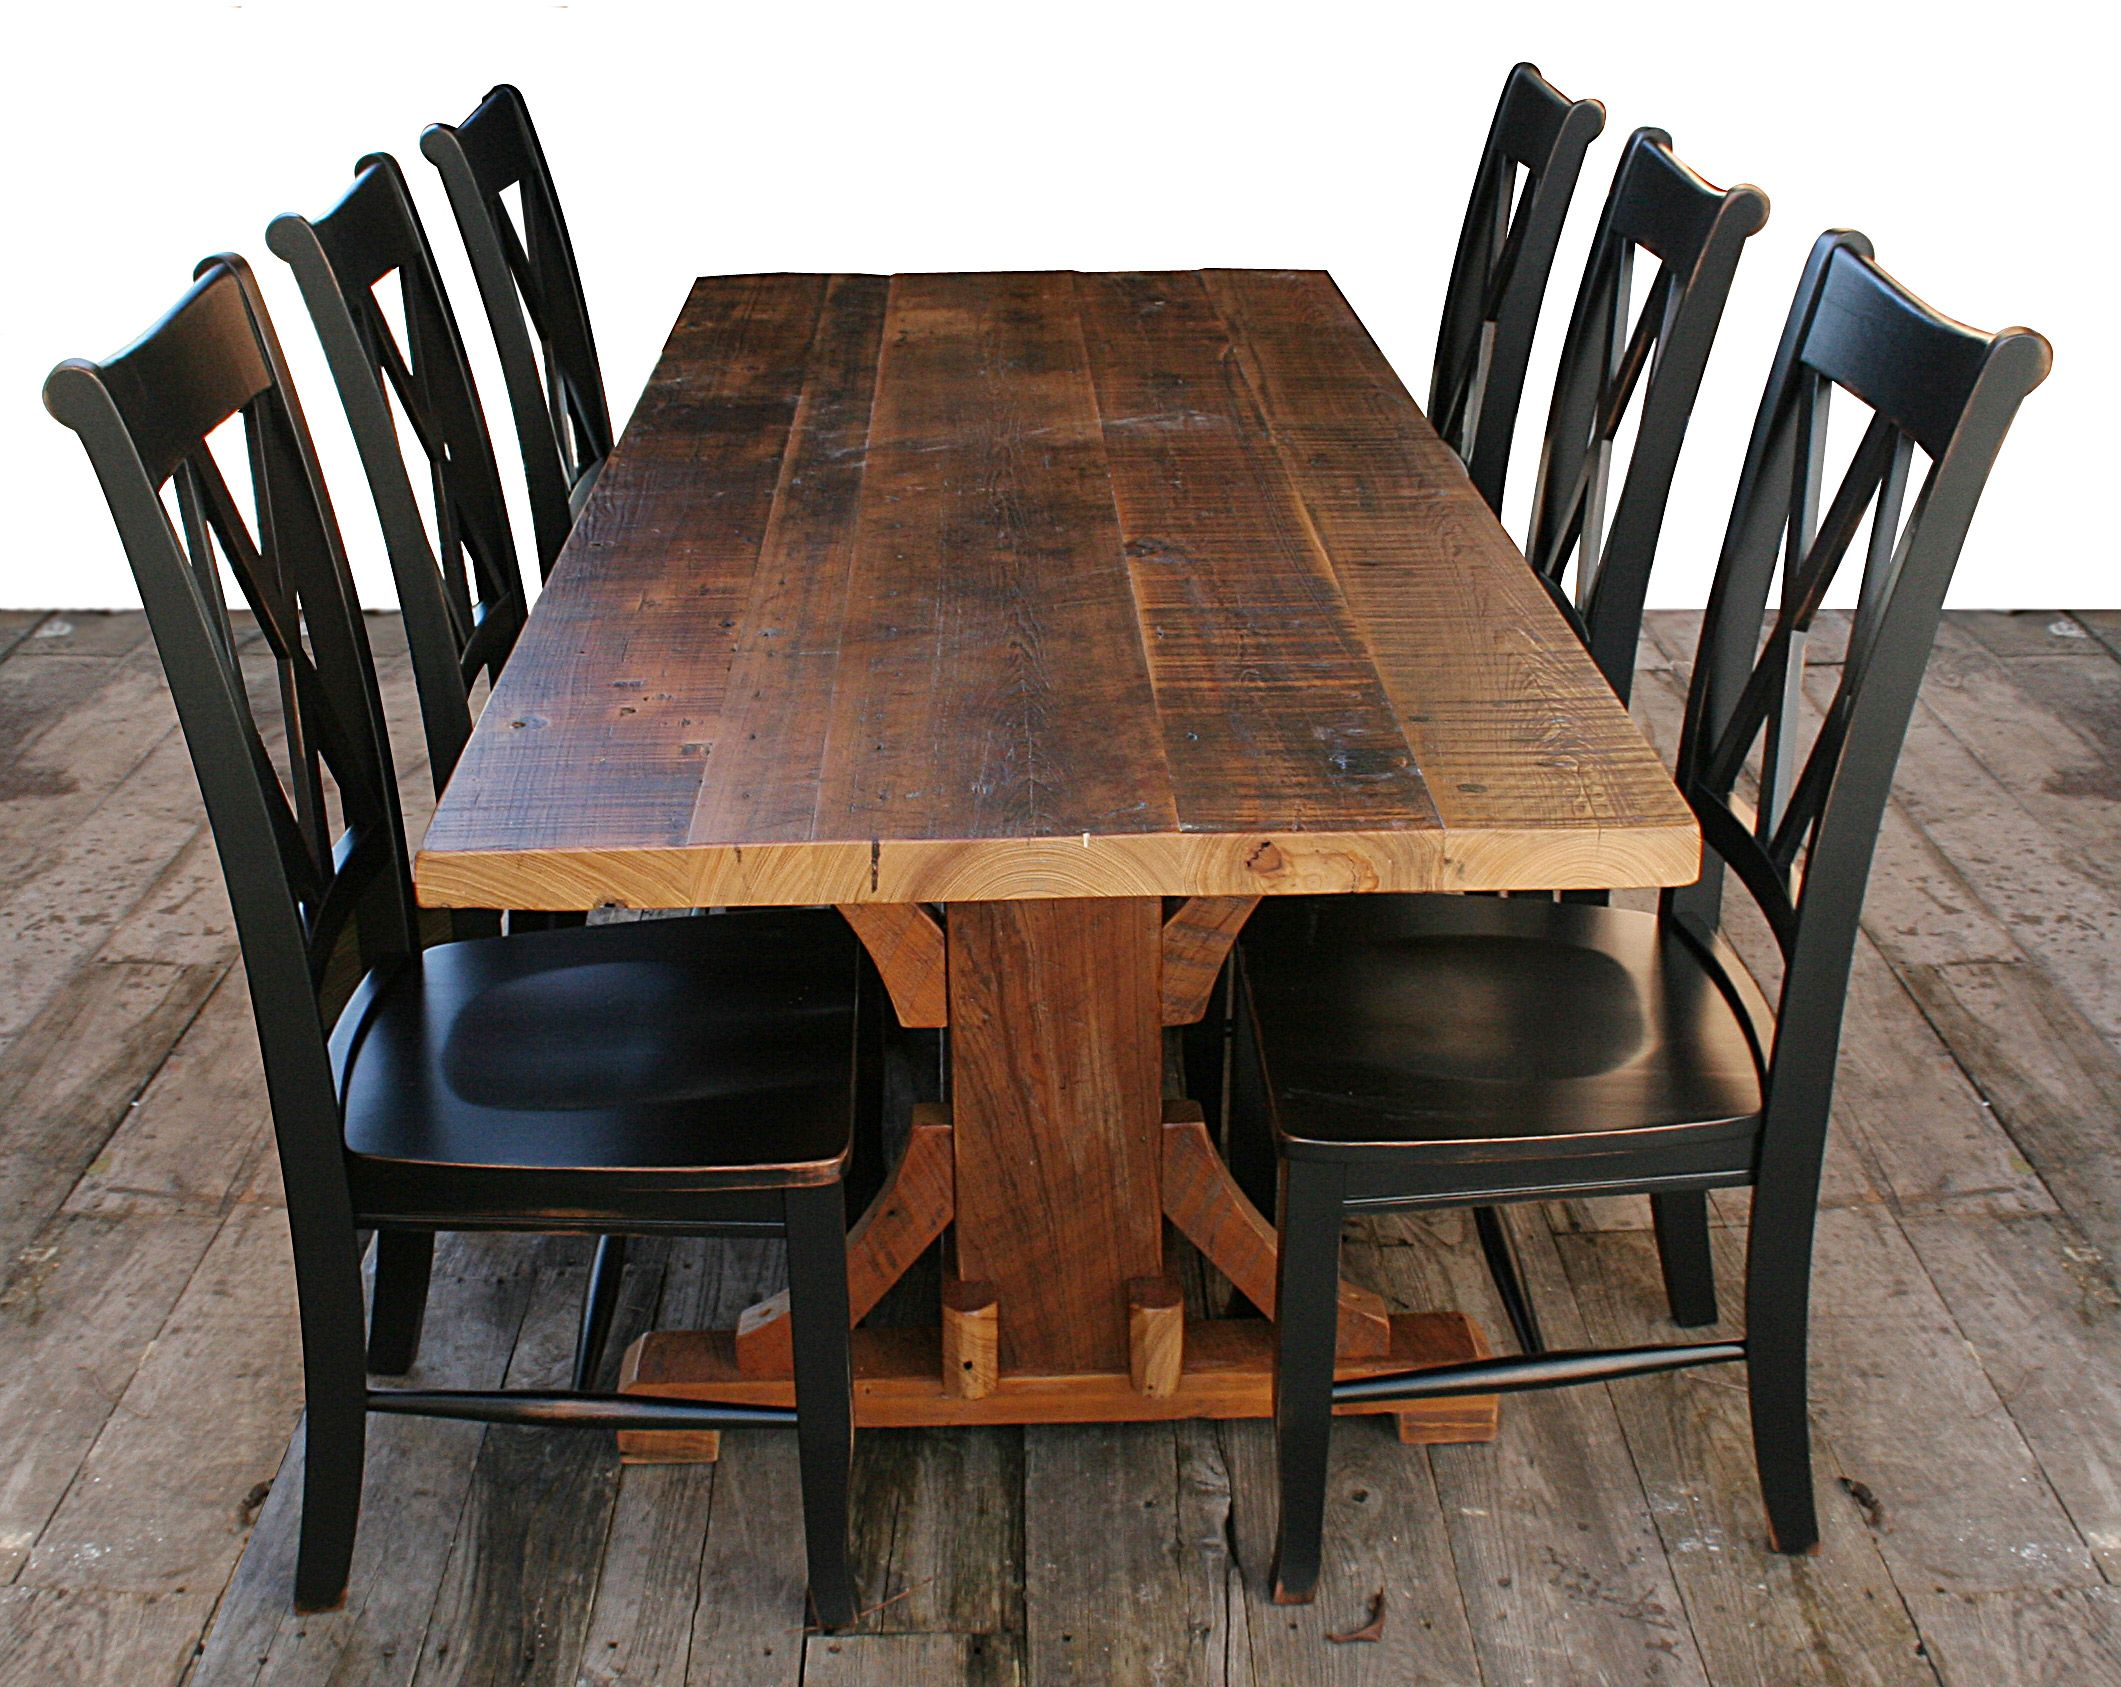 Cajun Timber Frame Tables | All Wood Furniture Incorporated ...